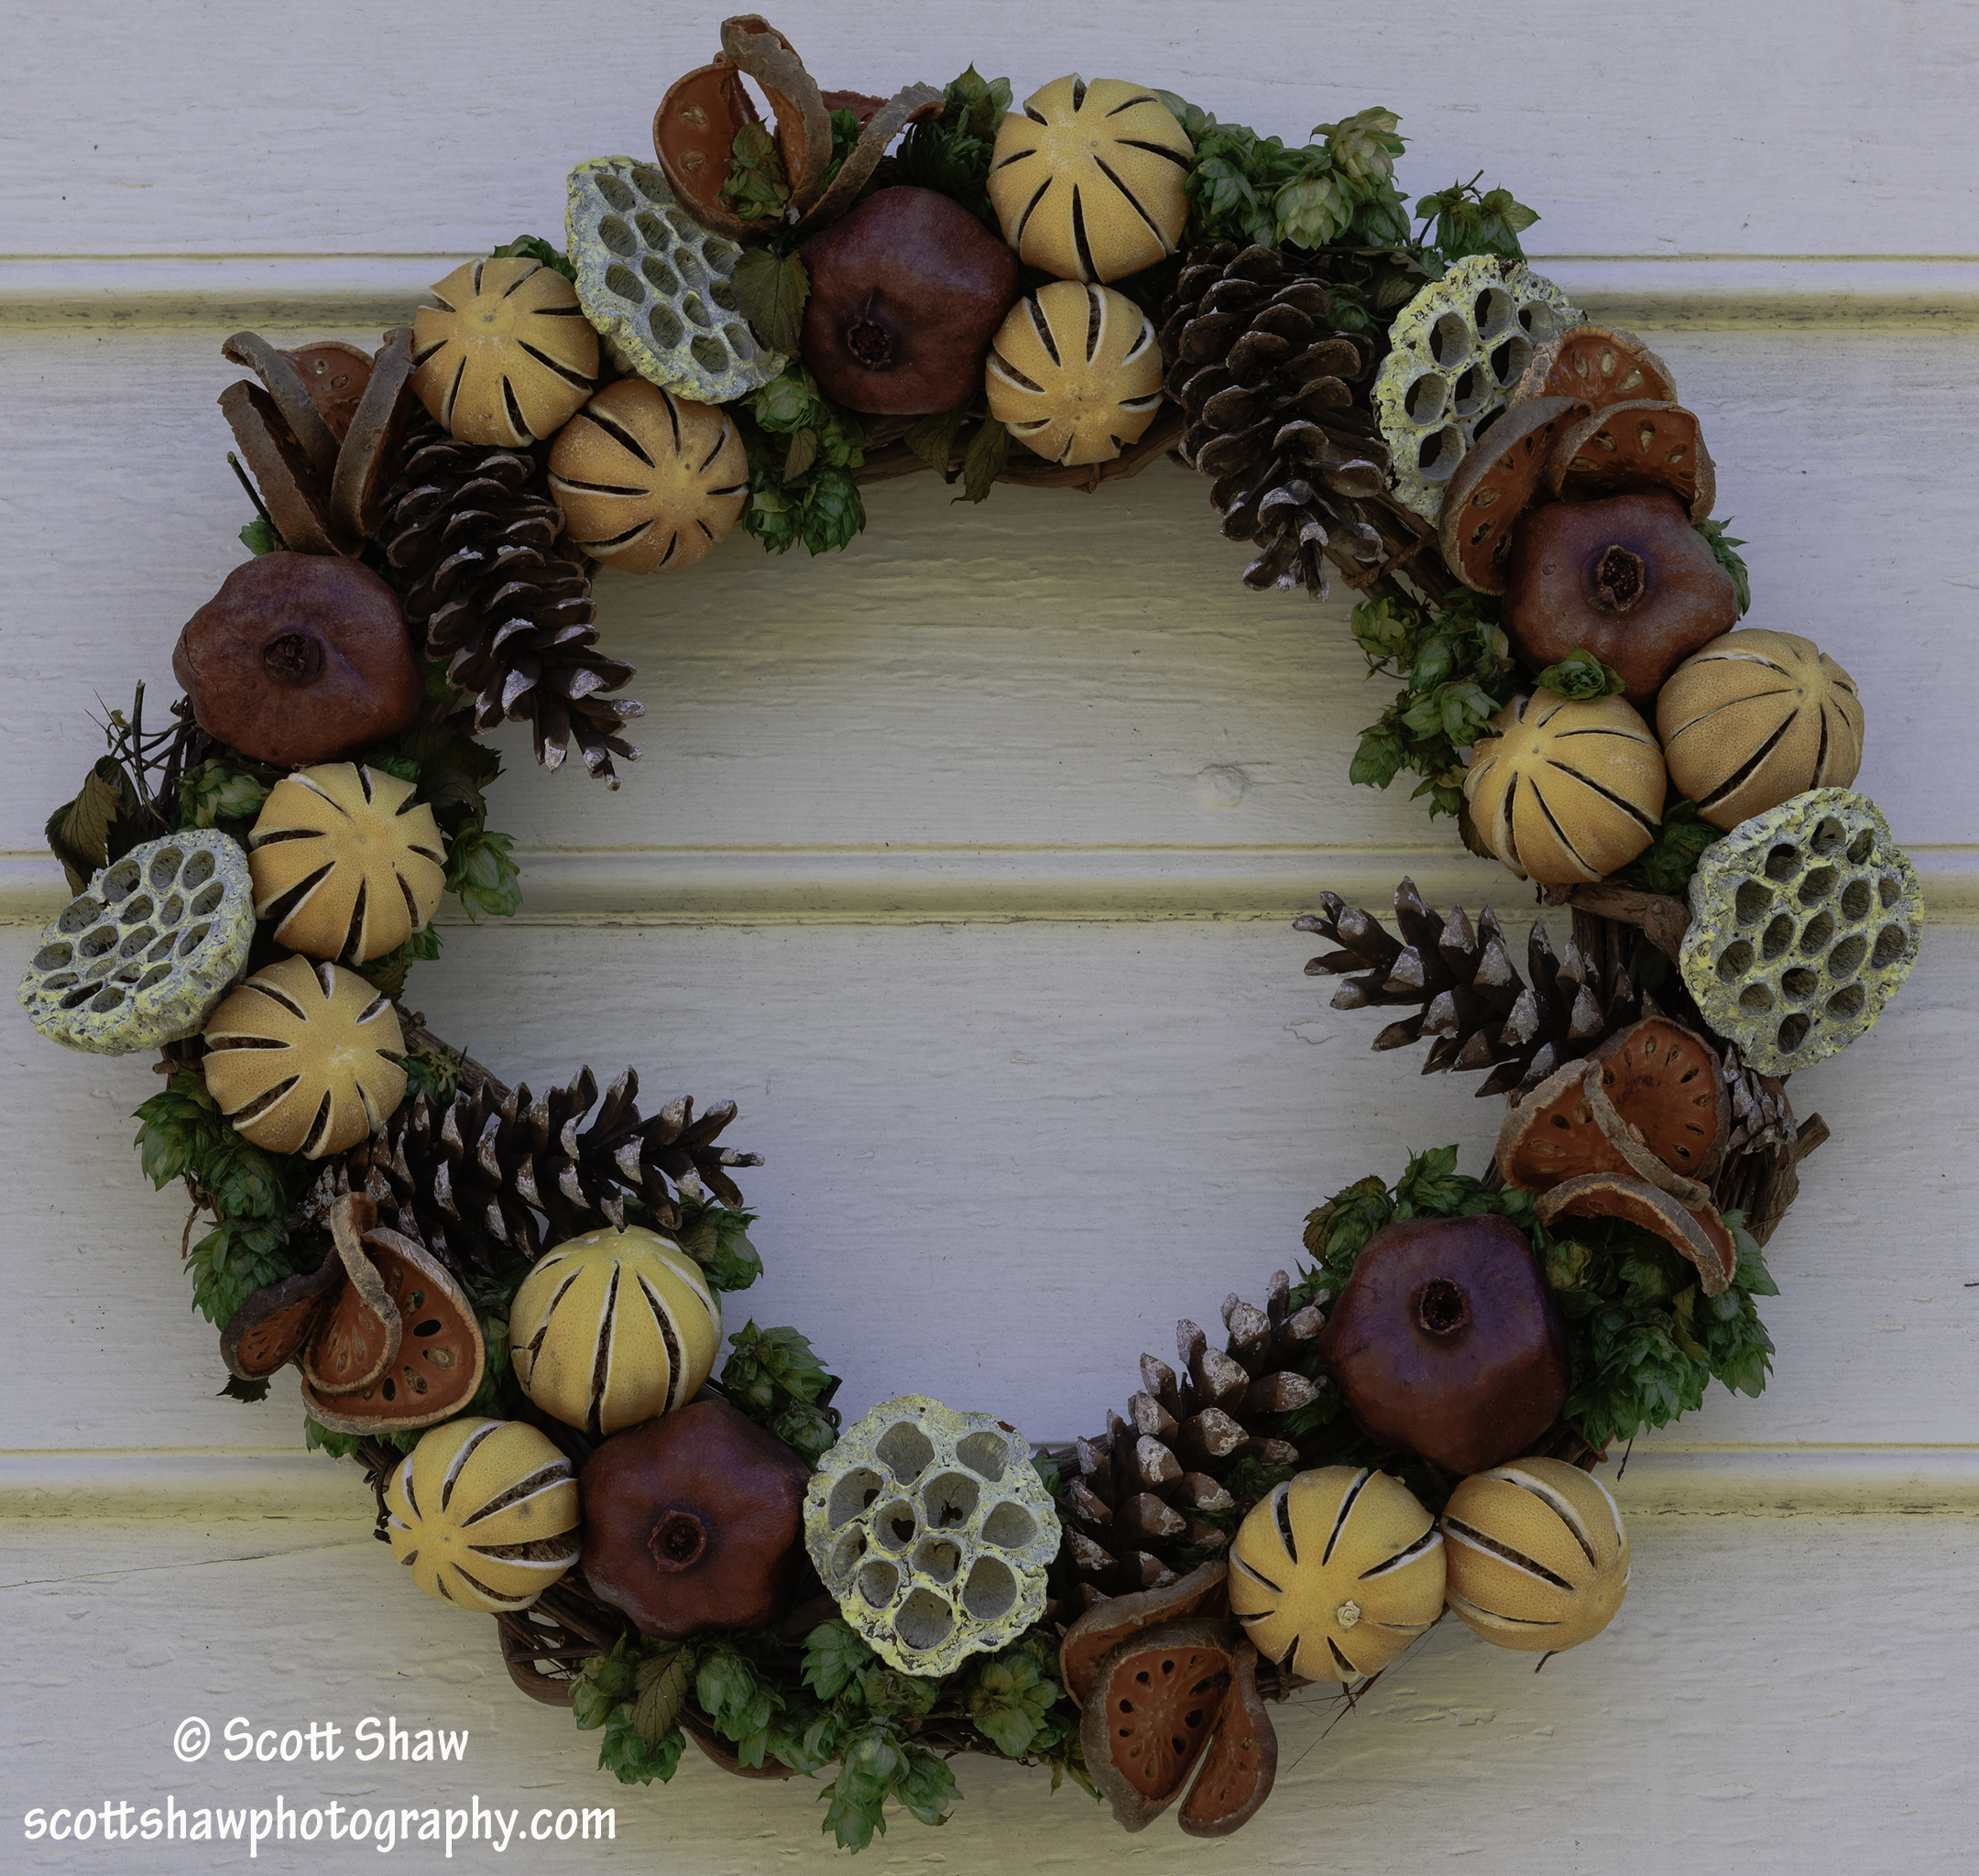 Williamsburg Christmas Wreath #2